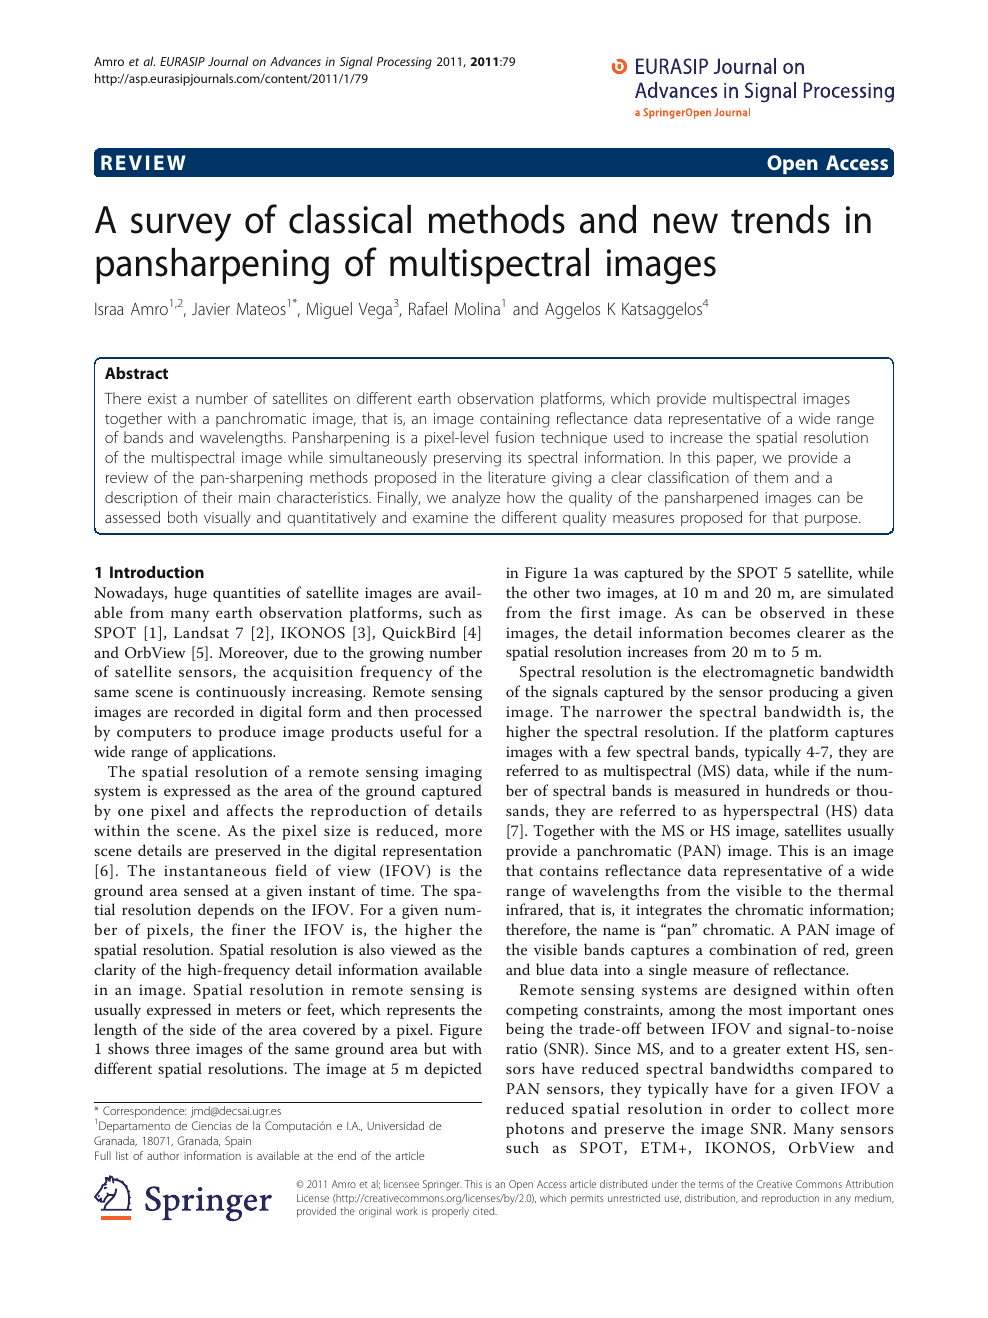 A survey of classical methods and new trends in